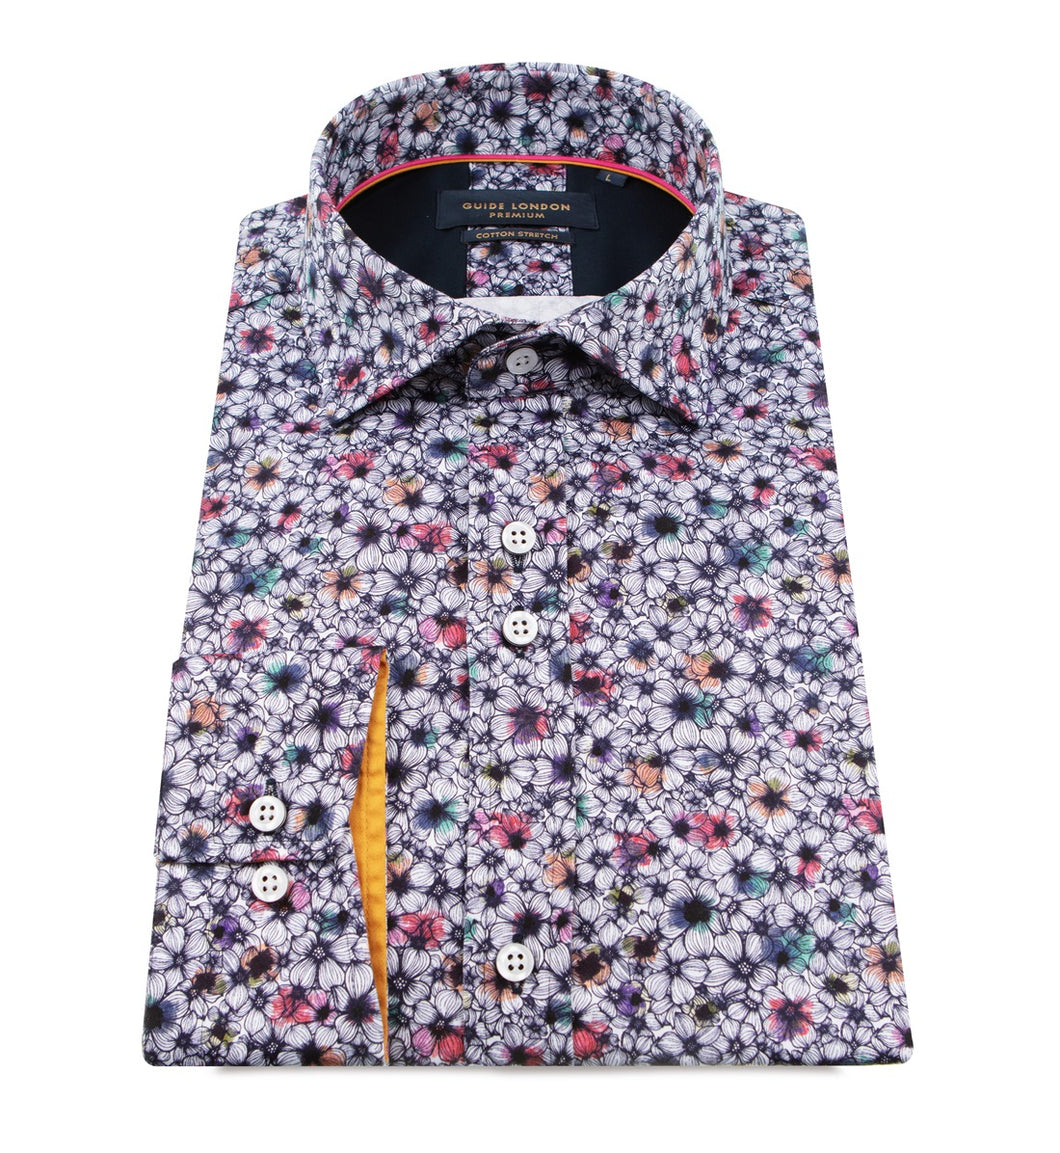 Guide London Multi Colour Floral Shirt